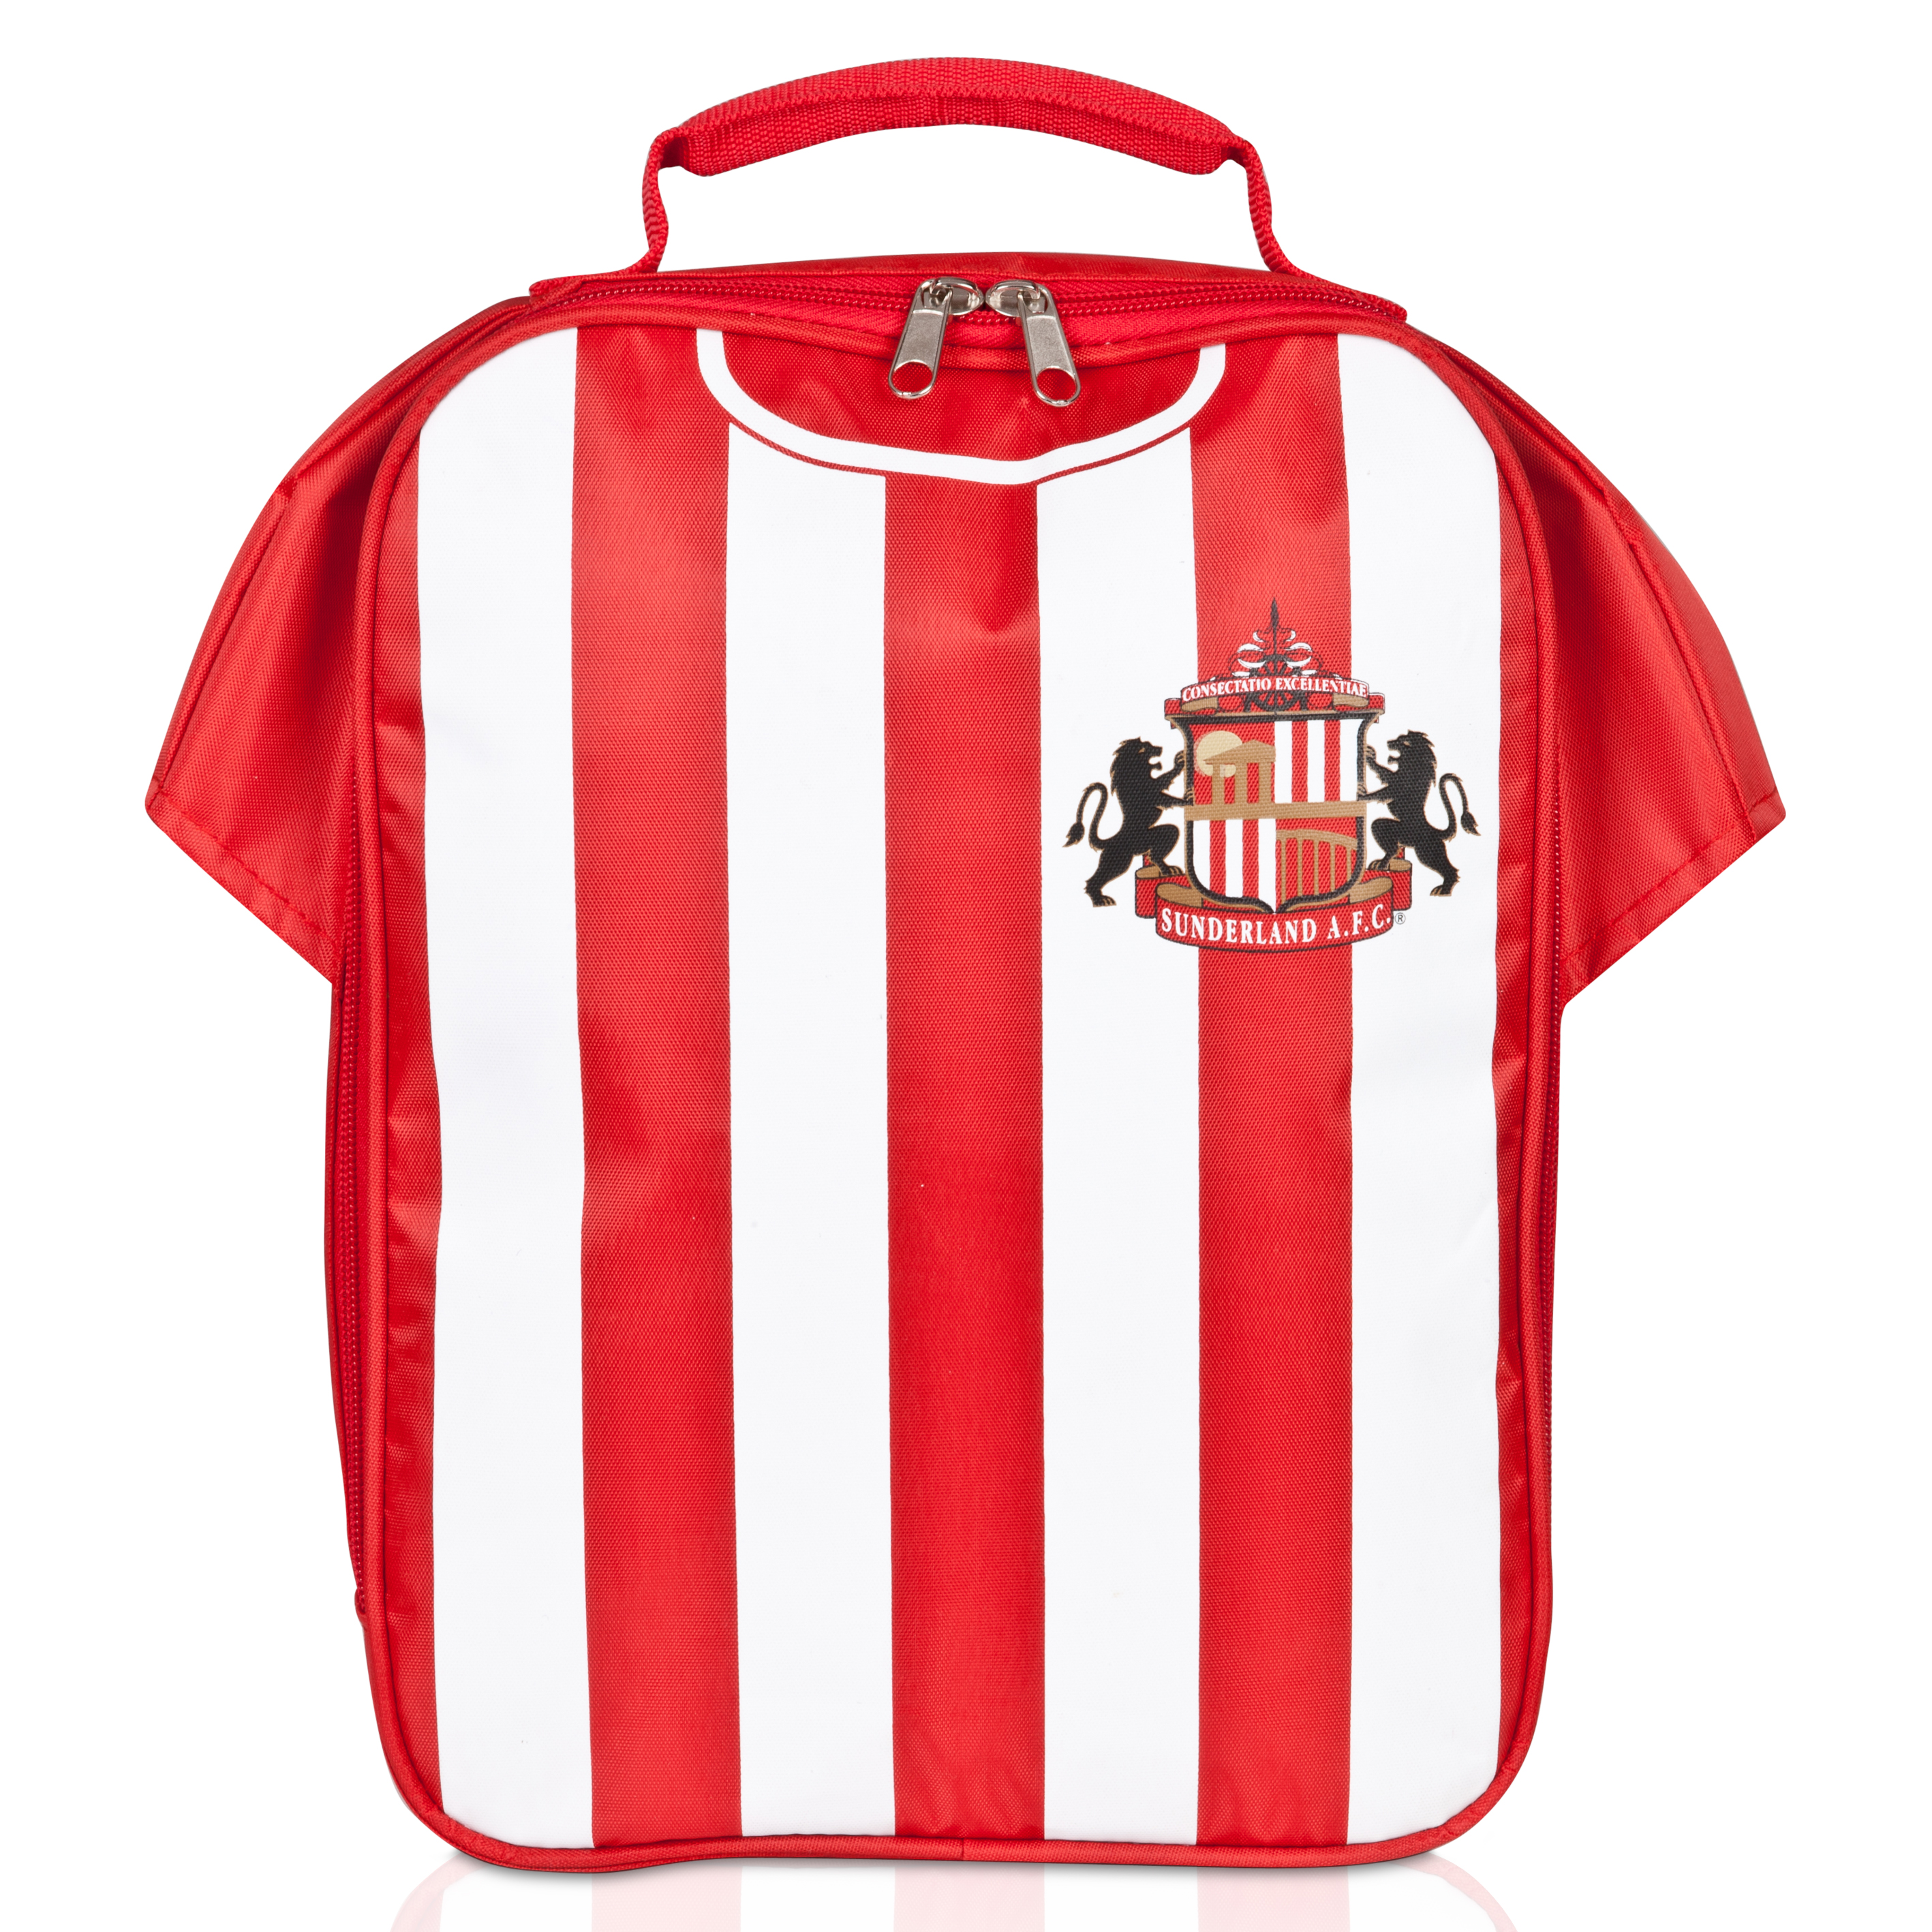 Sunderland Insulated Kit Lunch Bag - Red